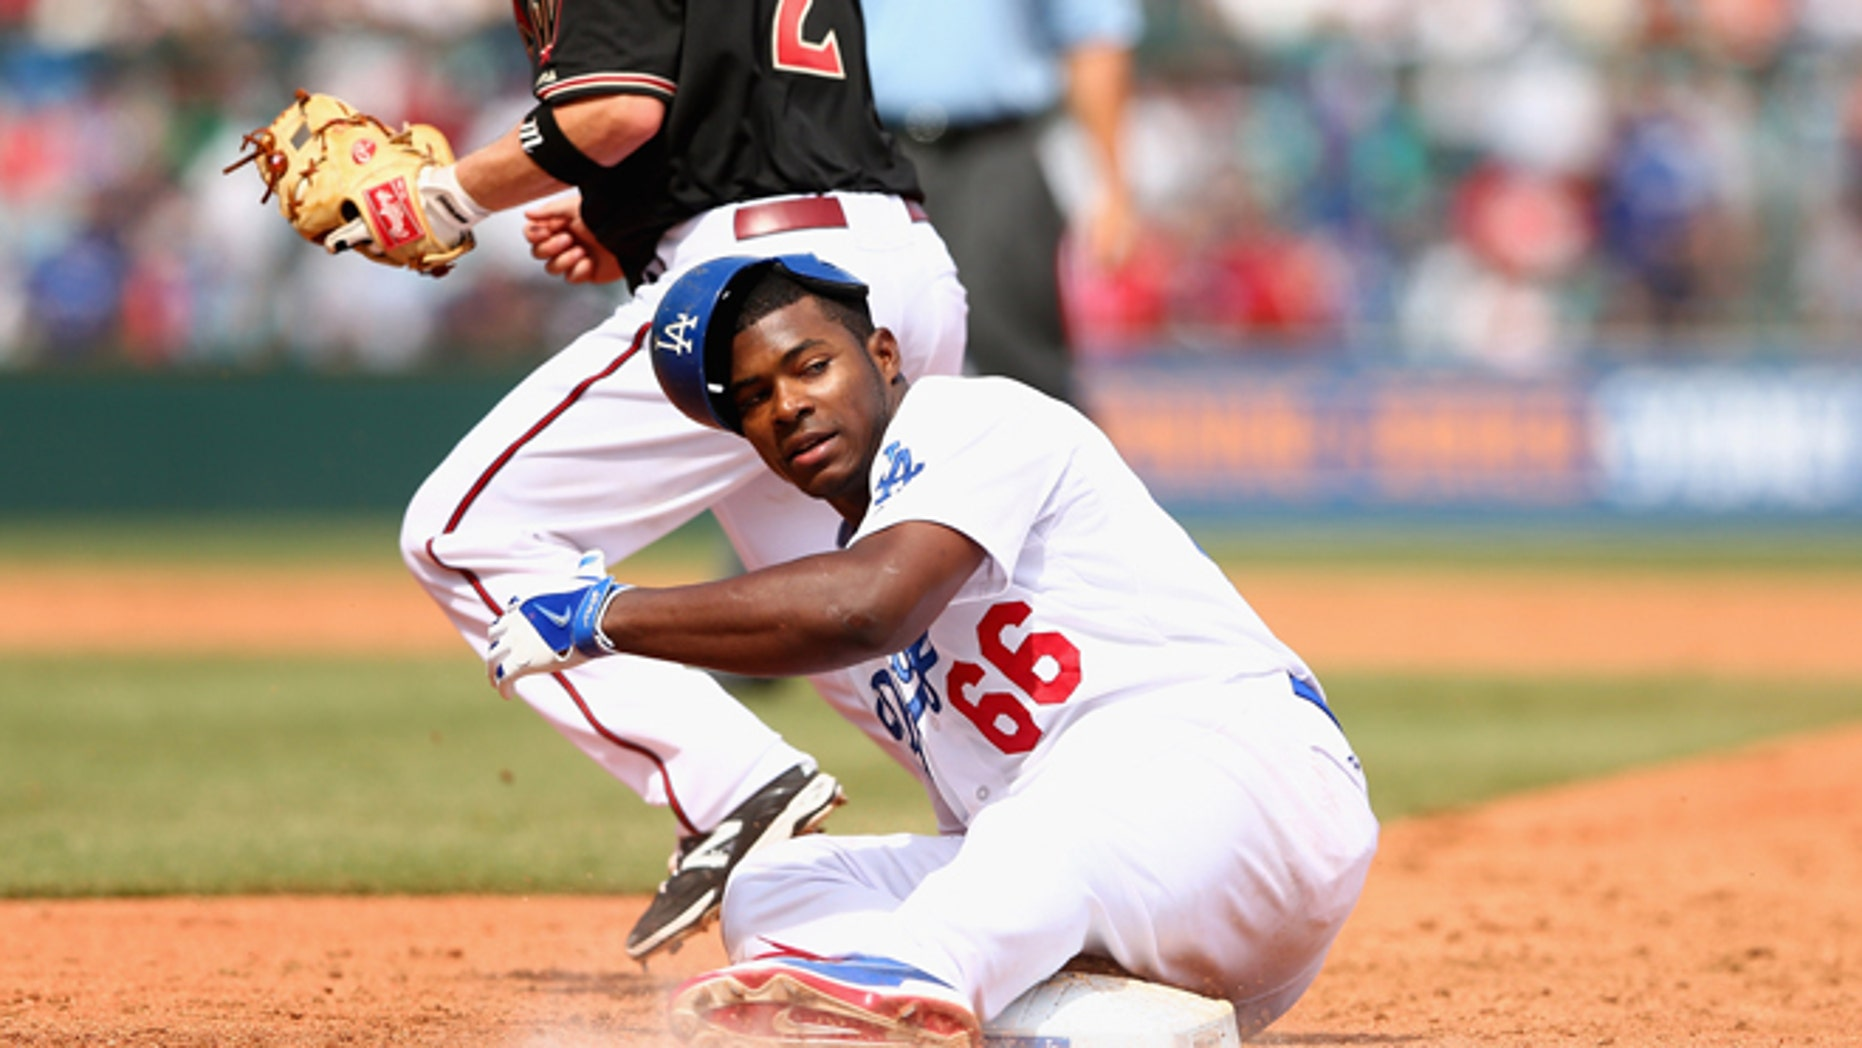 Yasiel Puig of the Dodgers on March 23, 2014 in Sydney, Australia.